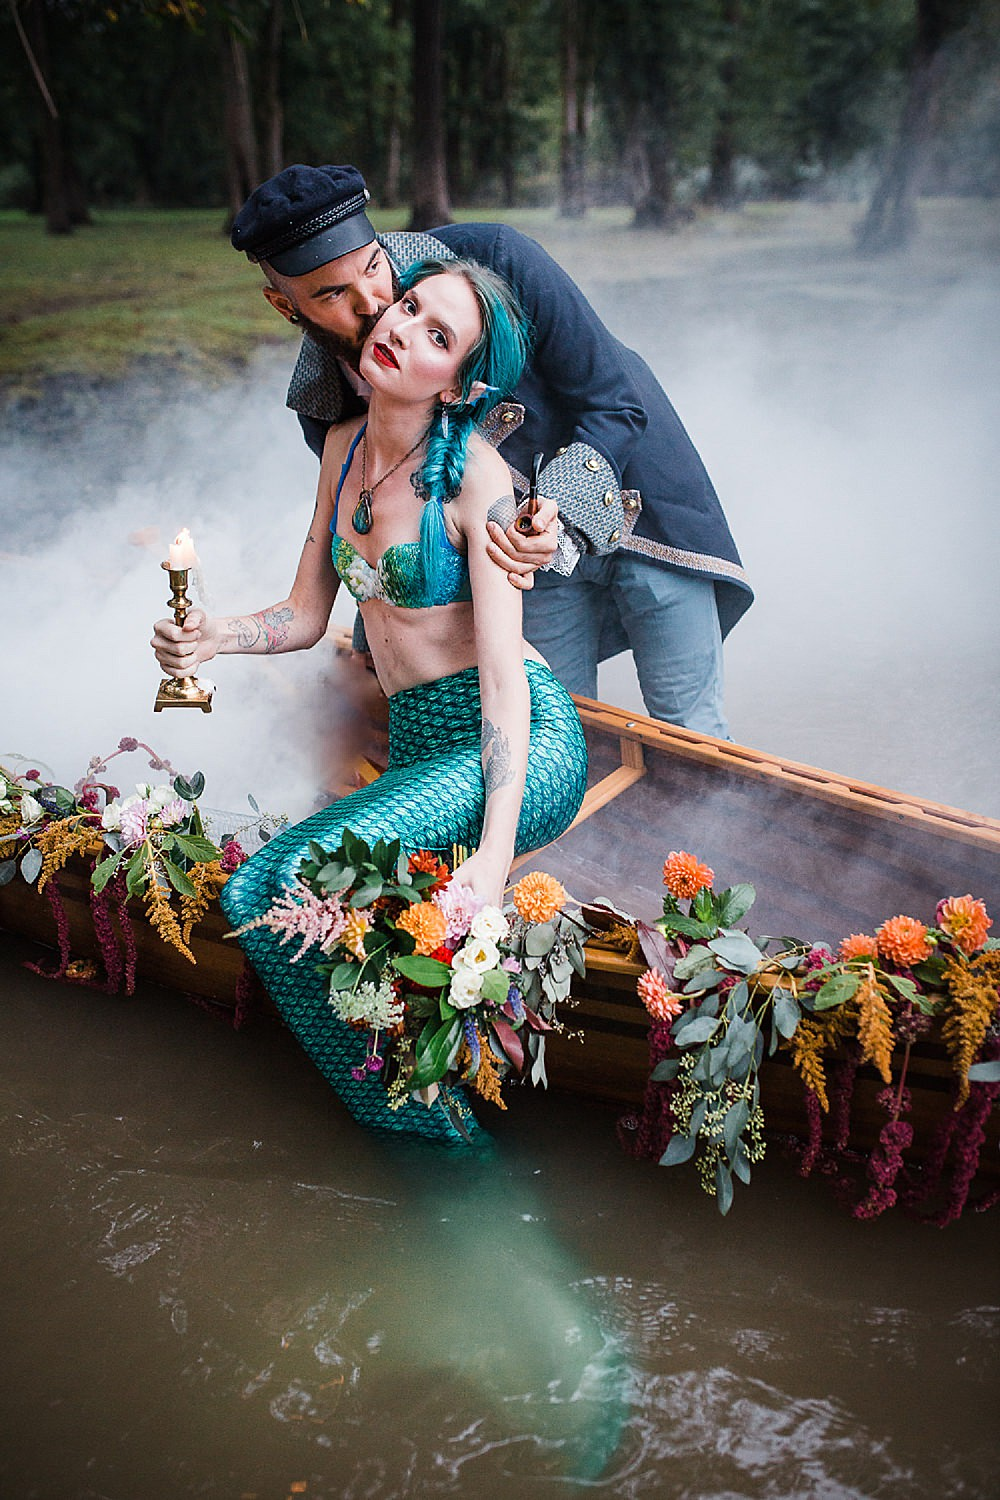 mermaid_fantasy_photography_styled_shoot20.jpg